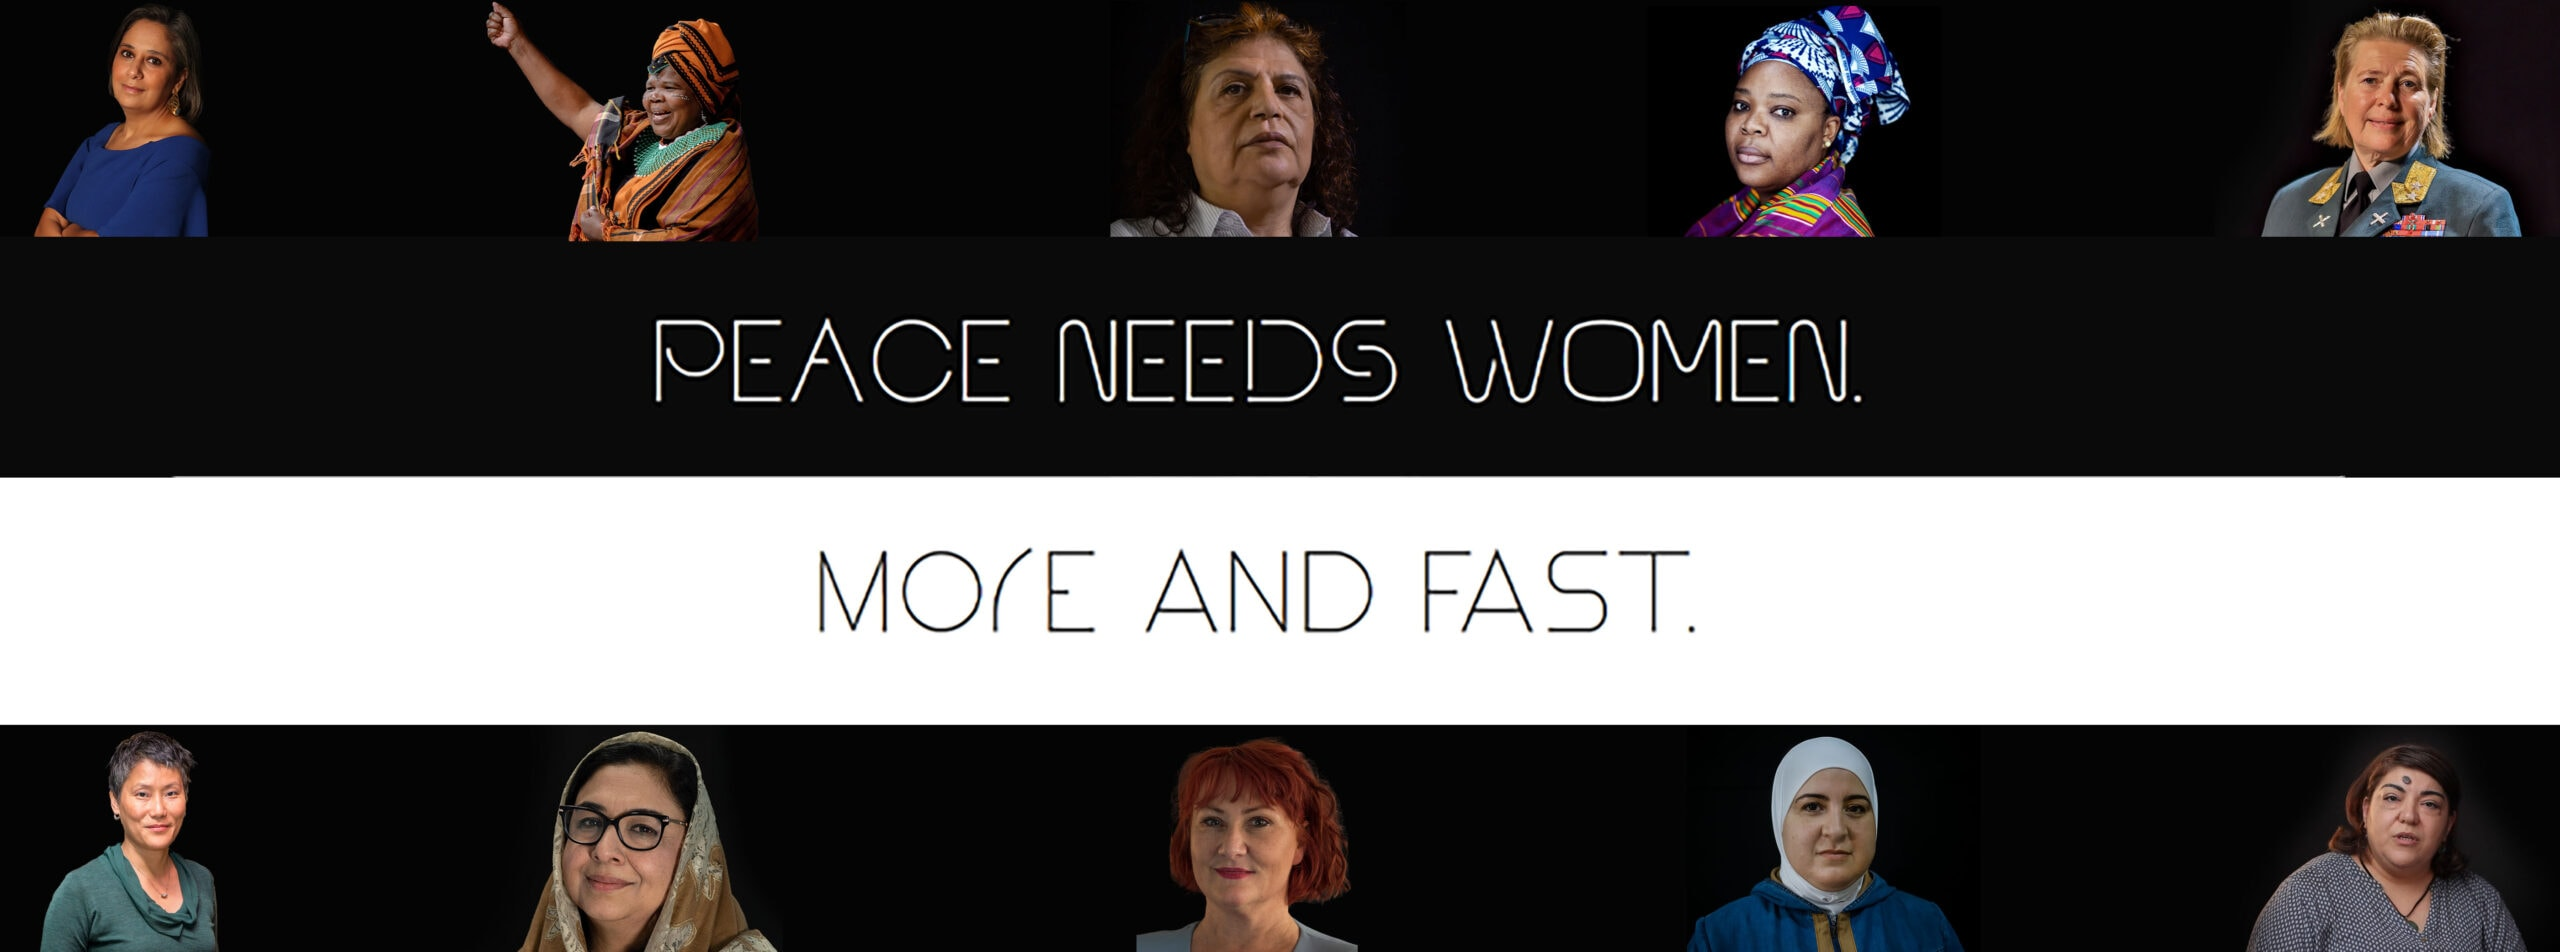 Hannahs Monthly - #SHEcurity: Peace needs women. More and fast! – Ein Monat im Zeichen der UN-Resolution 1325